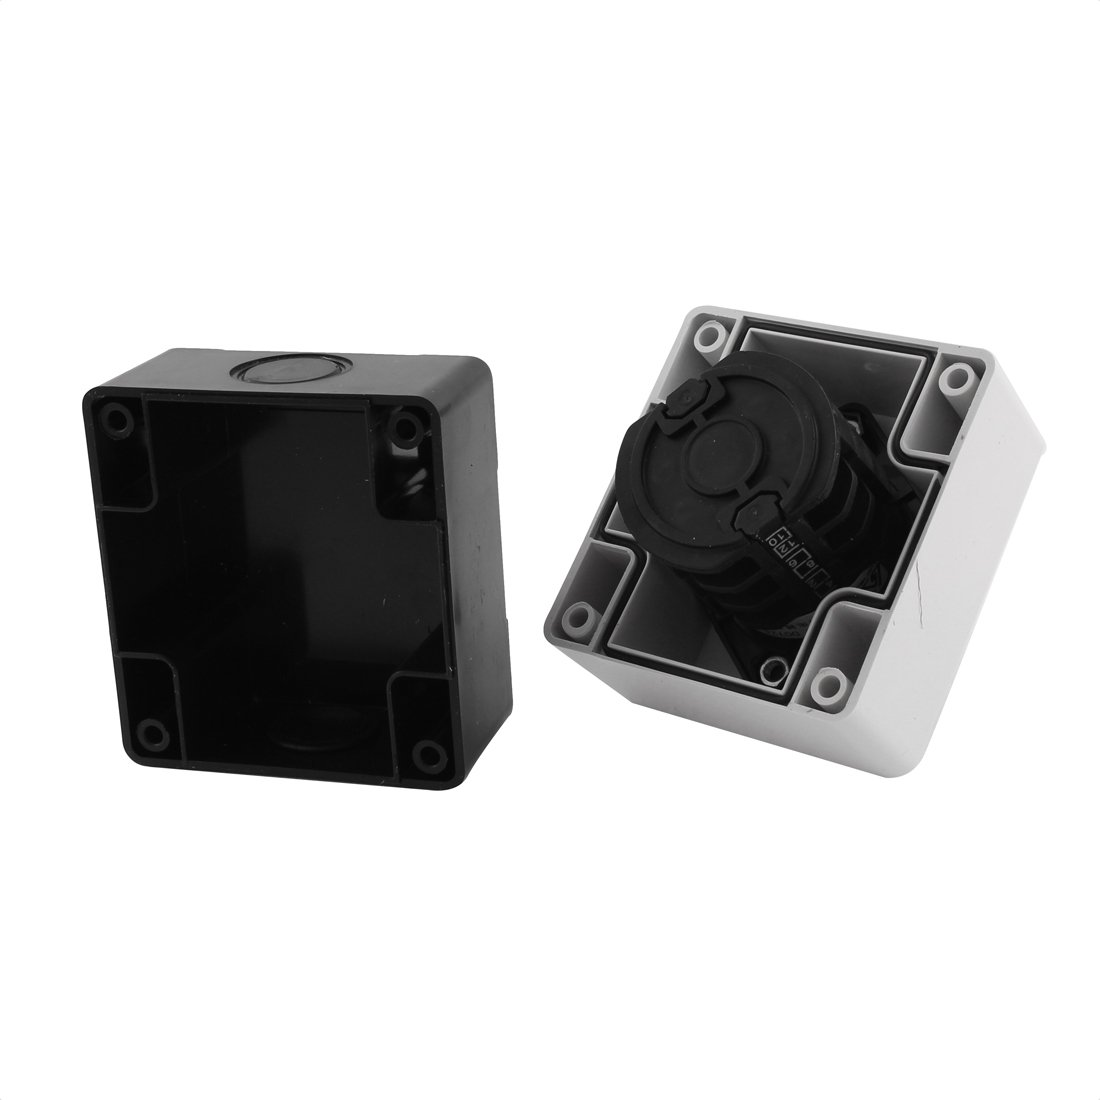 Ui 660V Ith 20A 3 Position Rotary Cam Changeover Switch w Control Box by uxcell (Image #3)